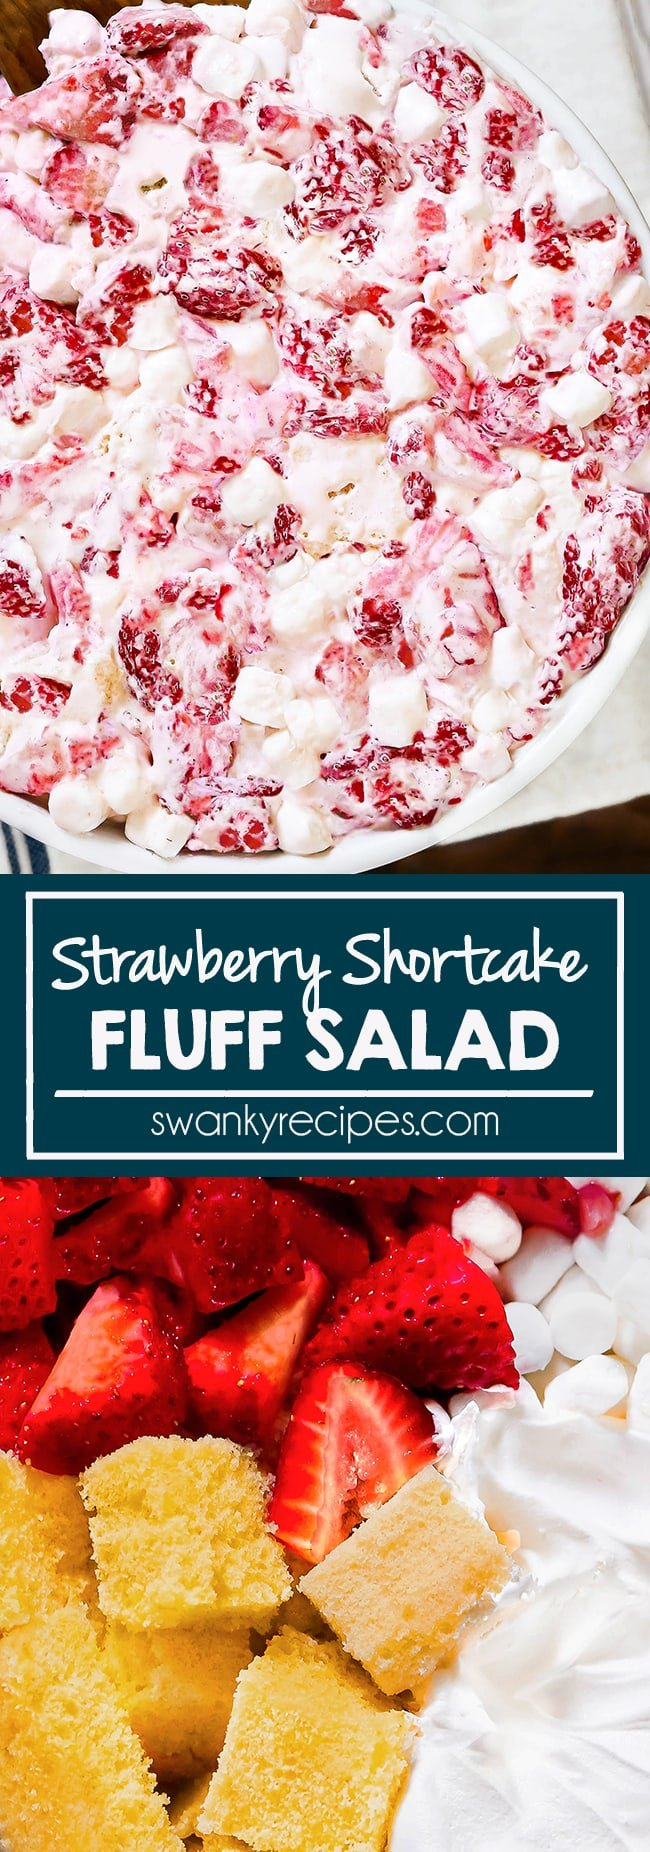 Strawberry Fluff Salad - Quick strawberry dessert salad with fresh strawberries, pound cake, whipped cream, and marshmallows. Easy summer or holiday side dish dessert.